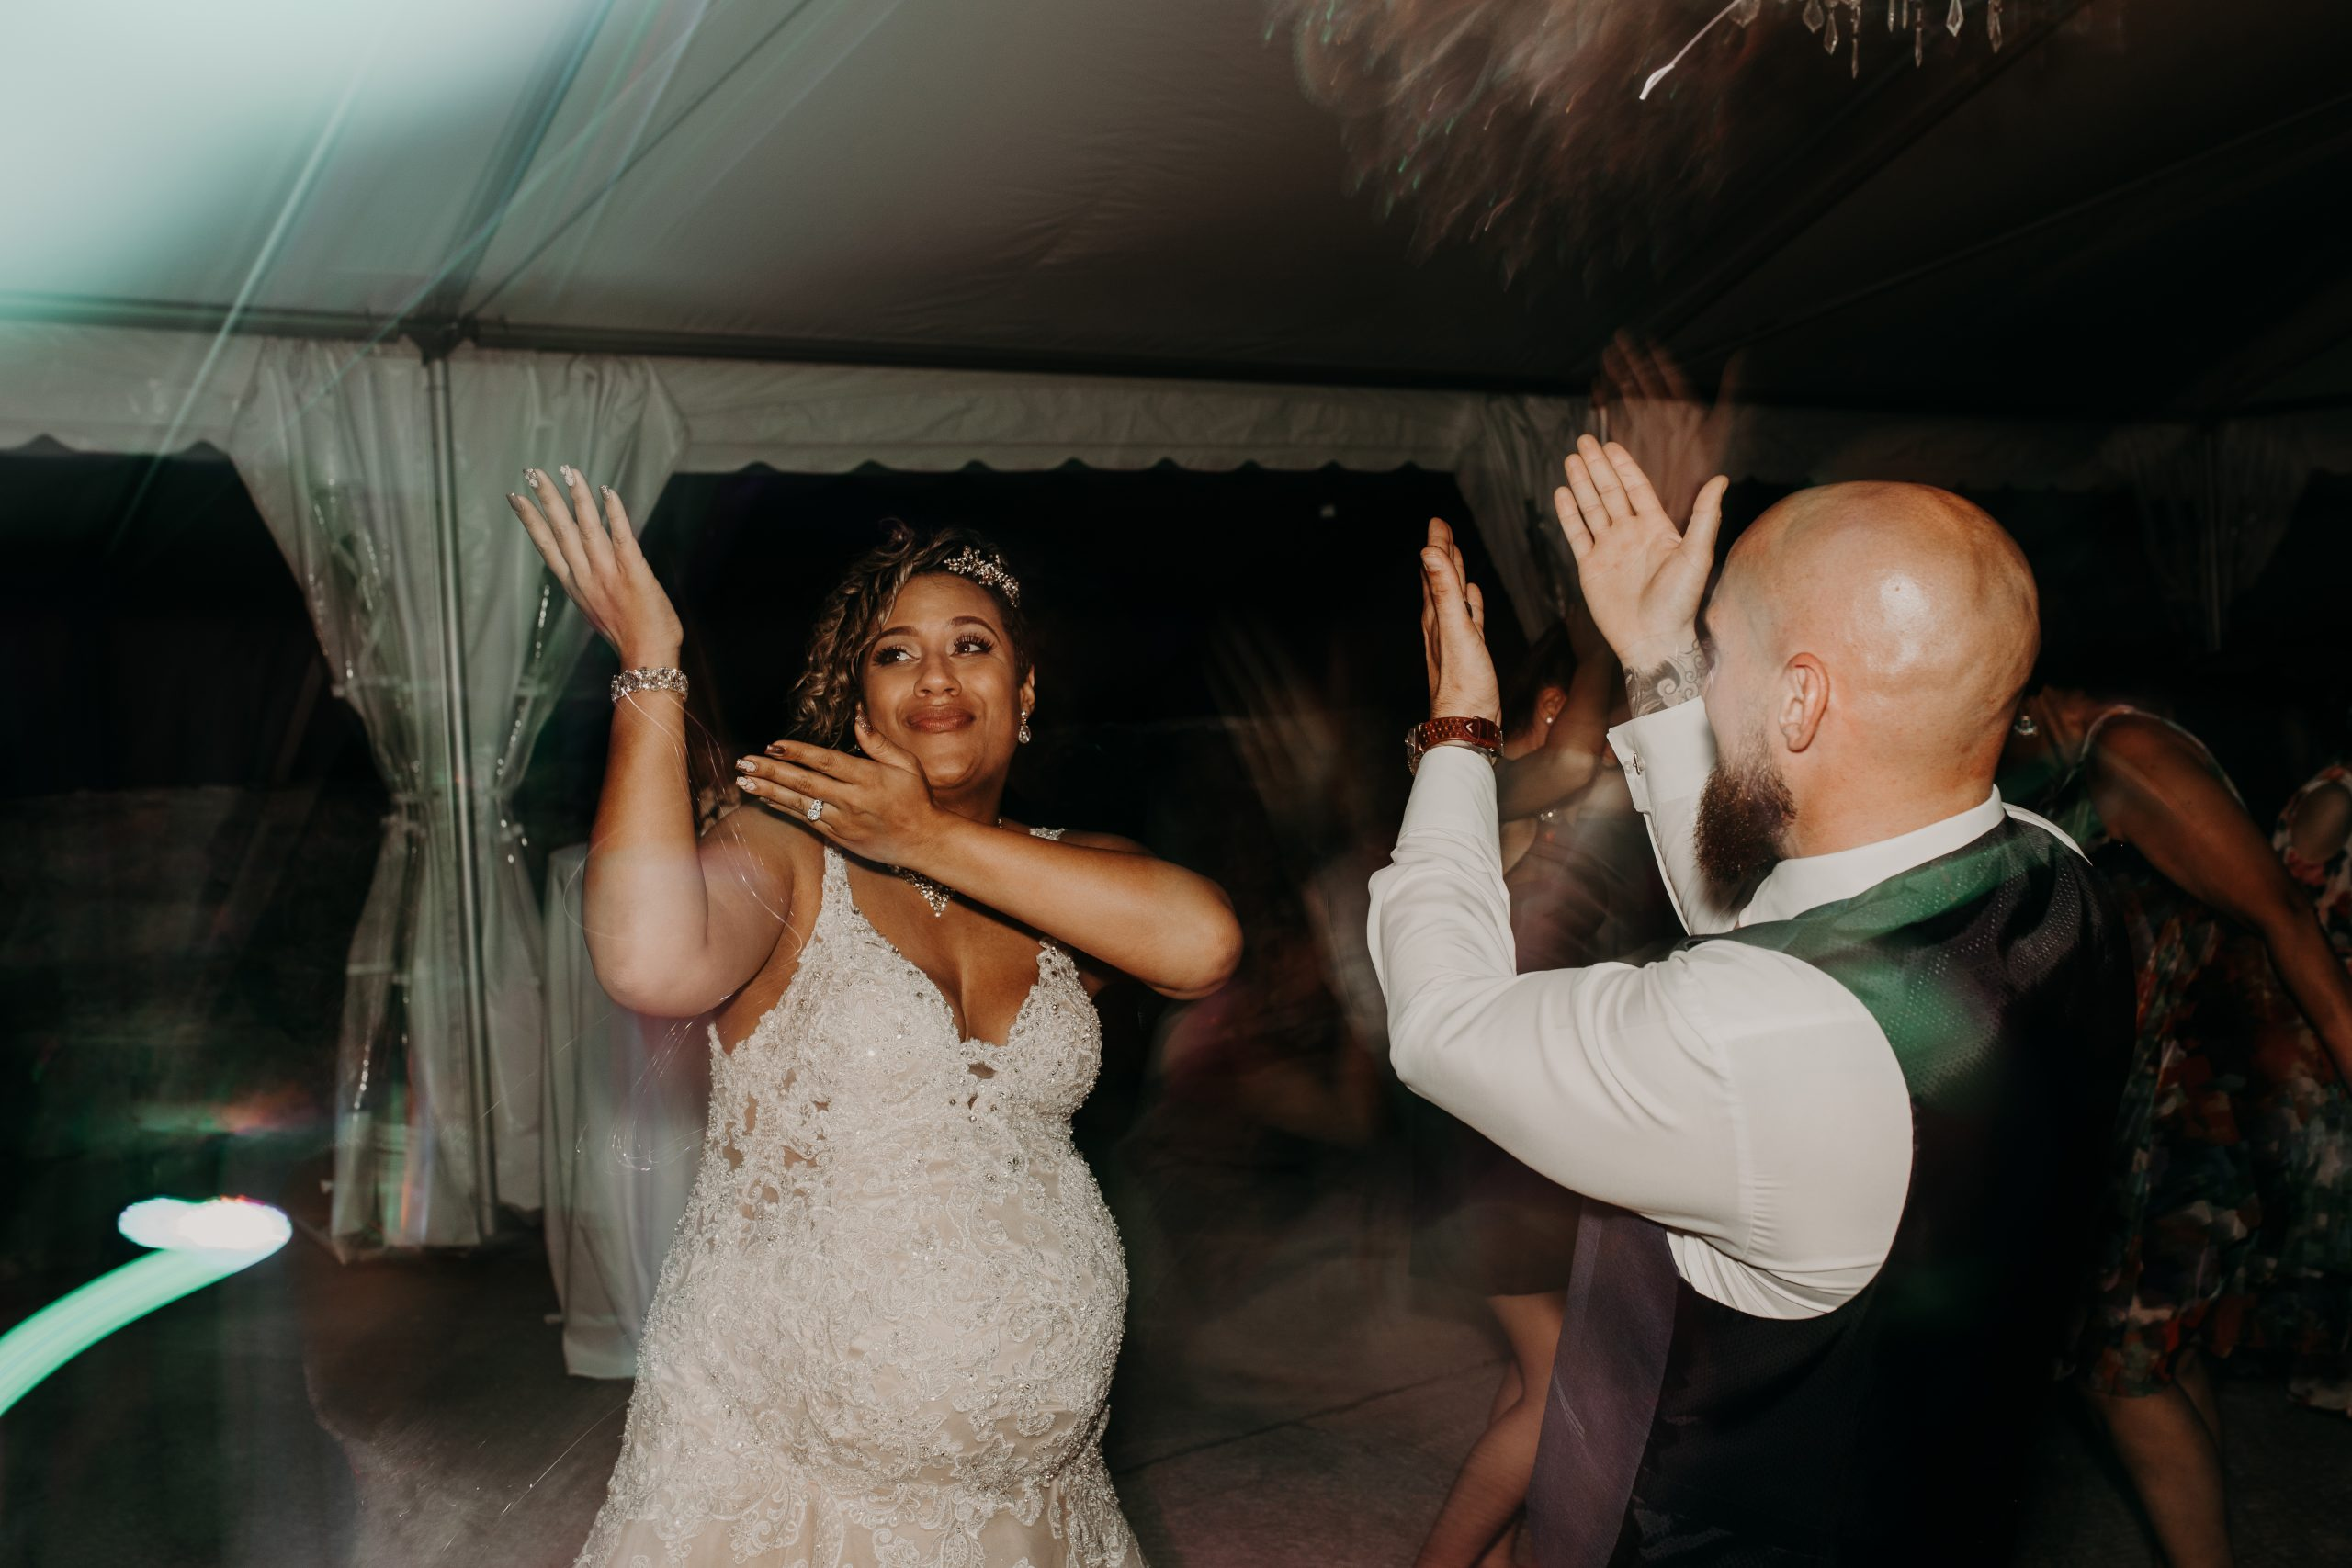 The newlyweds break it down on the dance floor. Christine and Richard wed on the Chestnut Hill Villa grounds on May of 2019. This organic ethereal styled wedding was captured by Garnet Dahlia Photography and featured on Dream Weddings.